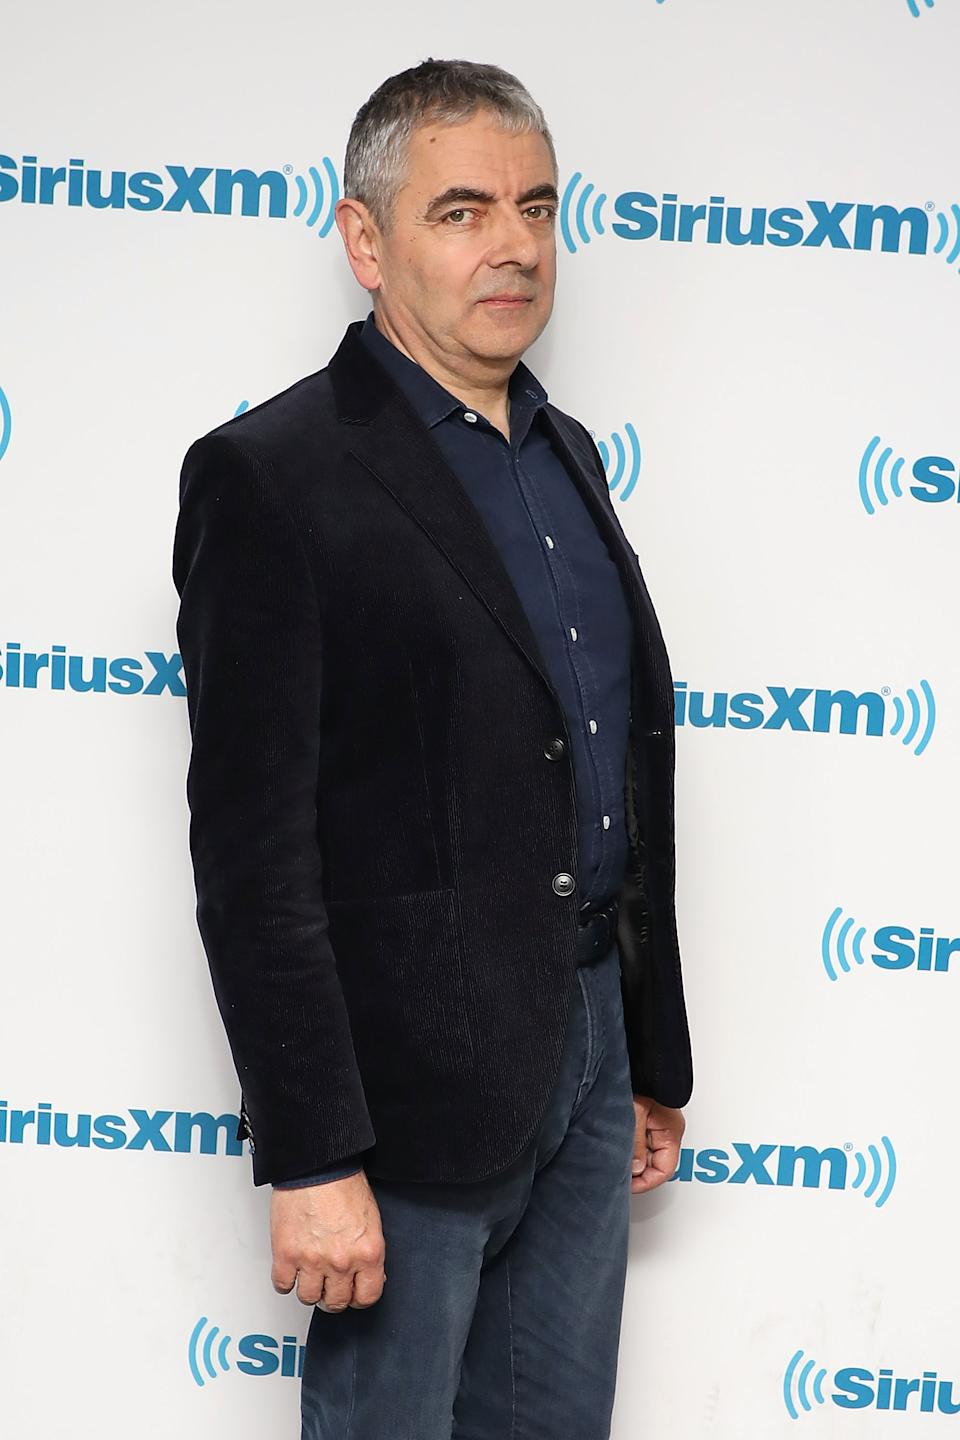 Rowan Atkinson visits the SiriusXM Studios on October 23, 2018 in New York City.  (Photo by Taylor Hill/Getty Images)